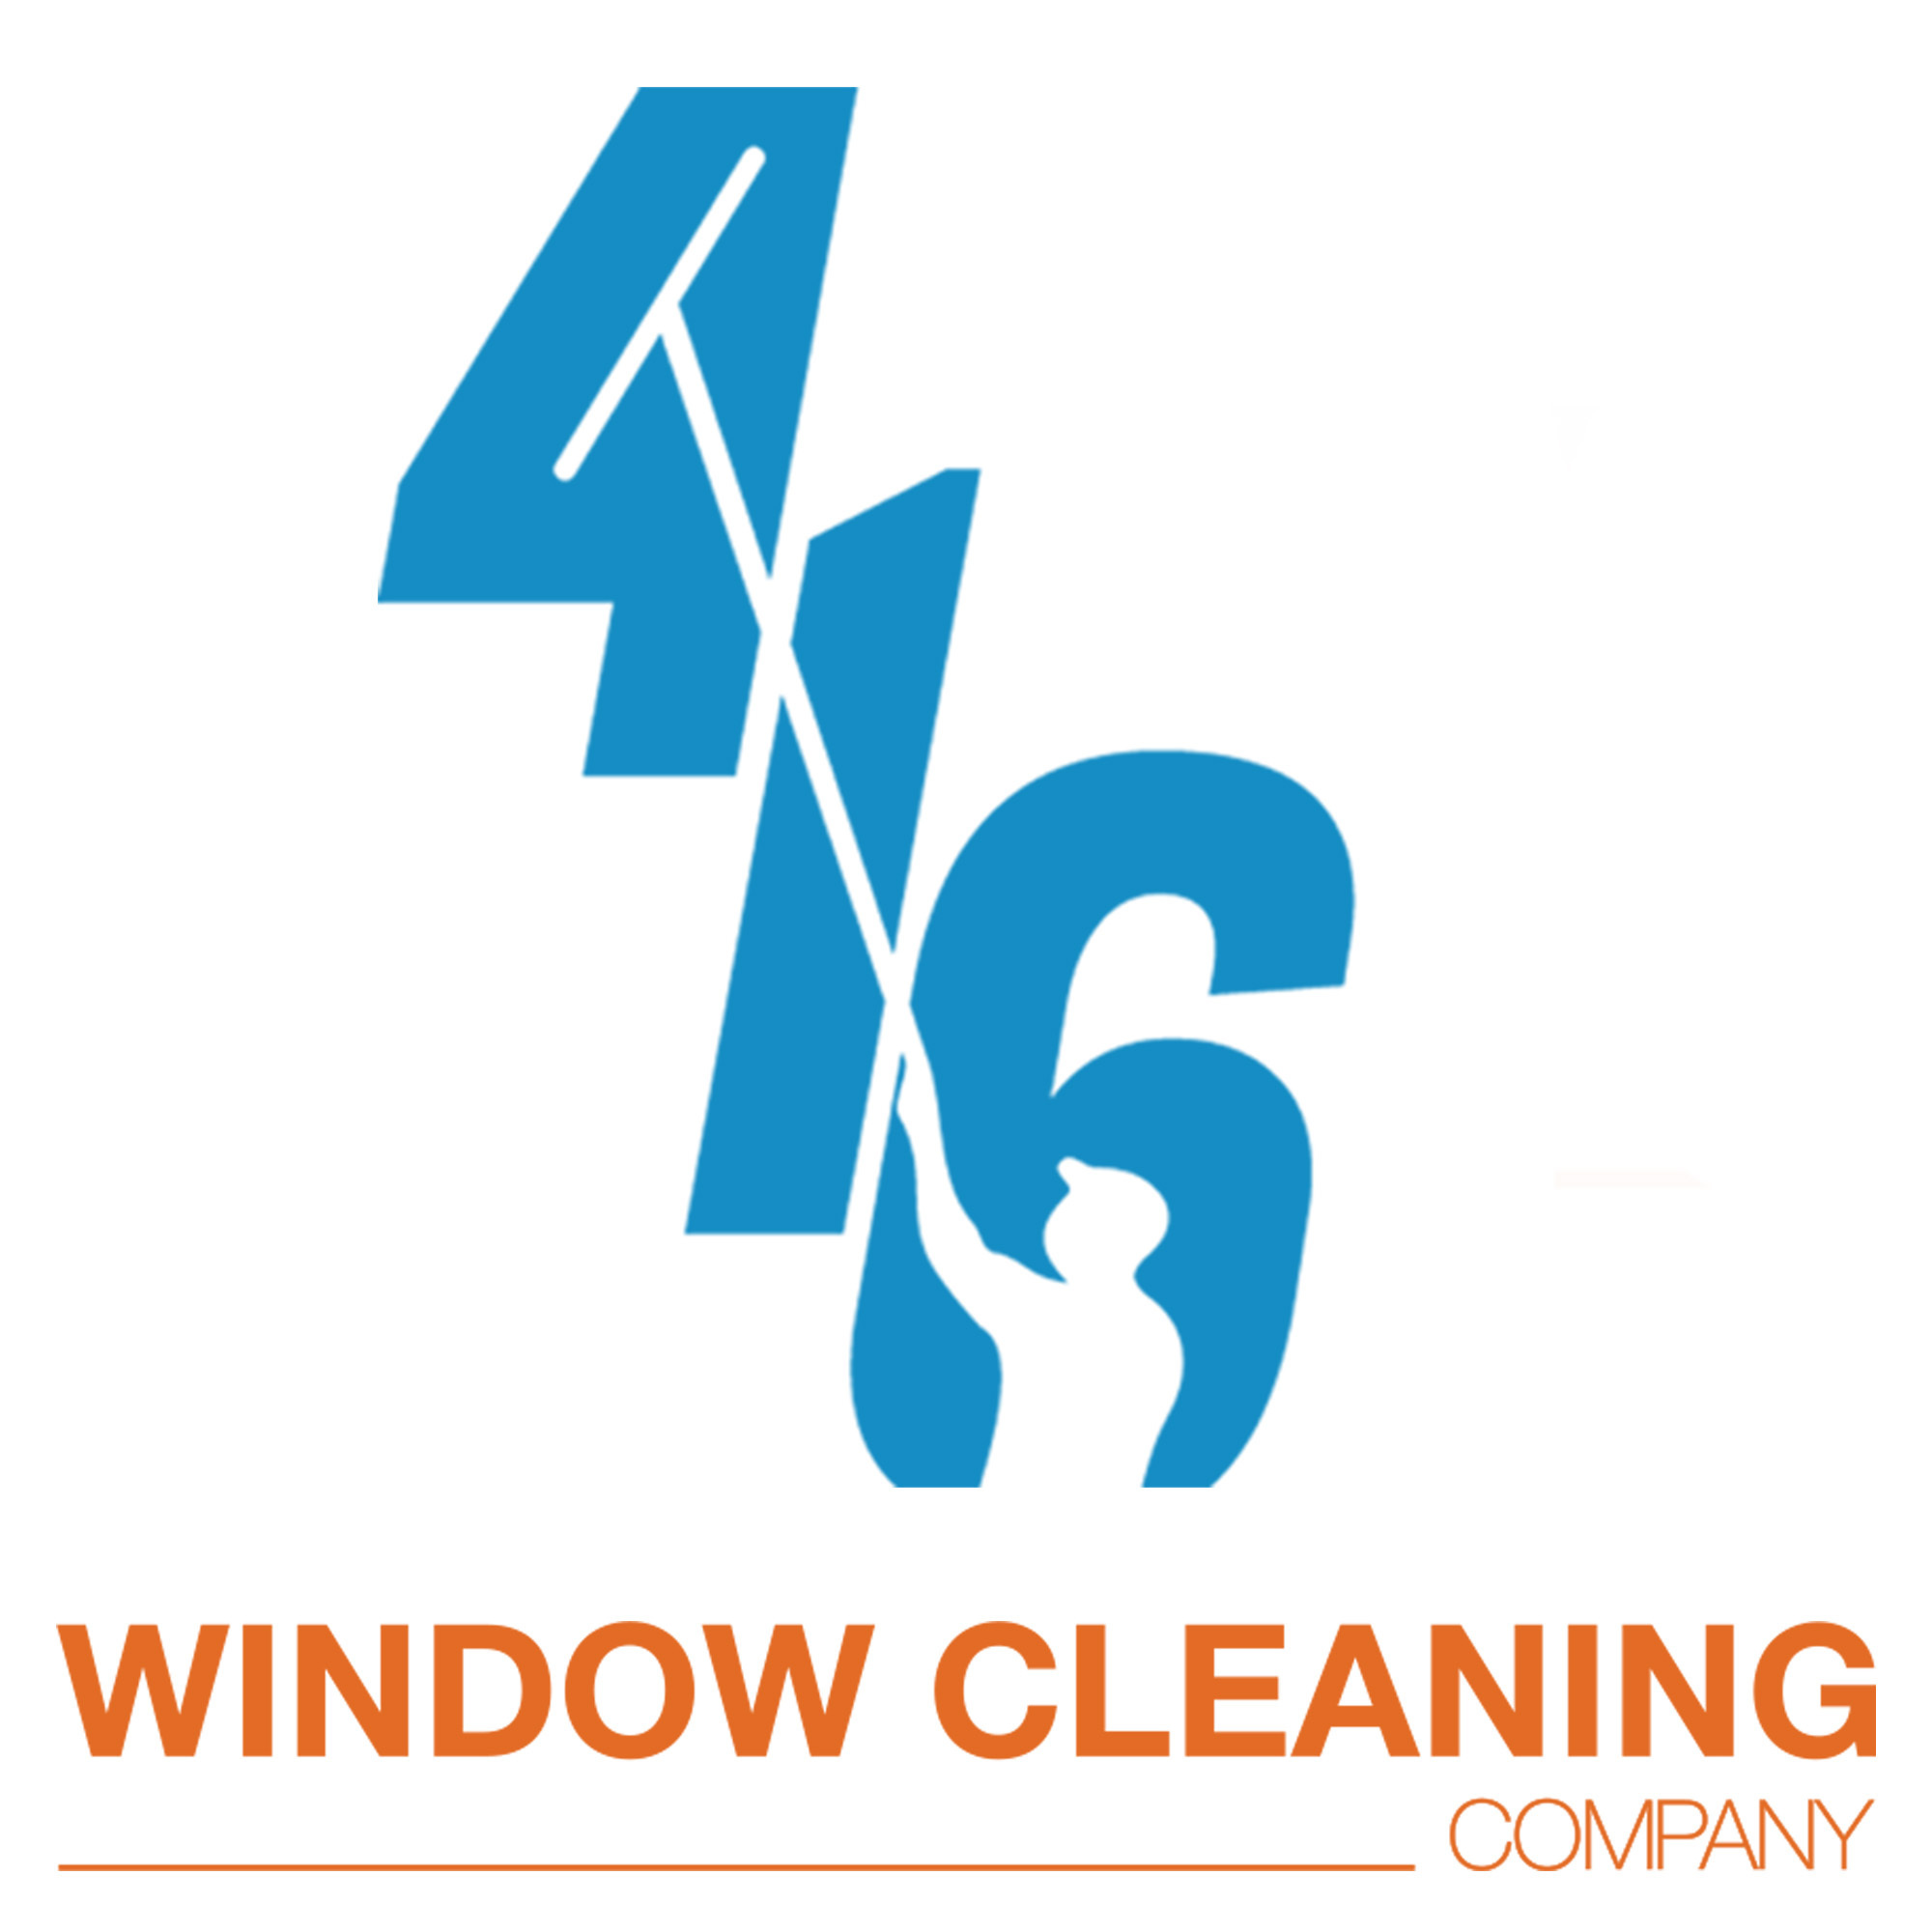 window gutter cleaning services in richmond hill homestars rh homestars com window cleaning logos images window cleaning logos pic